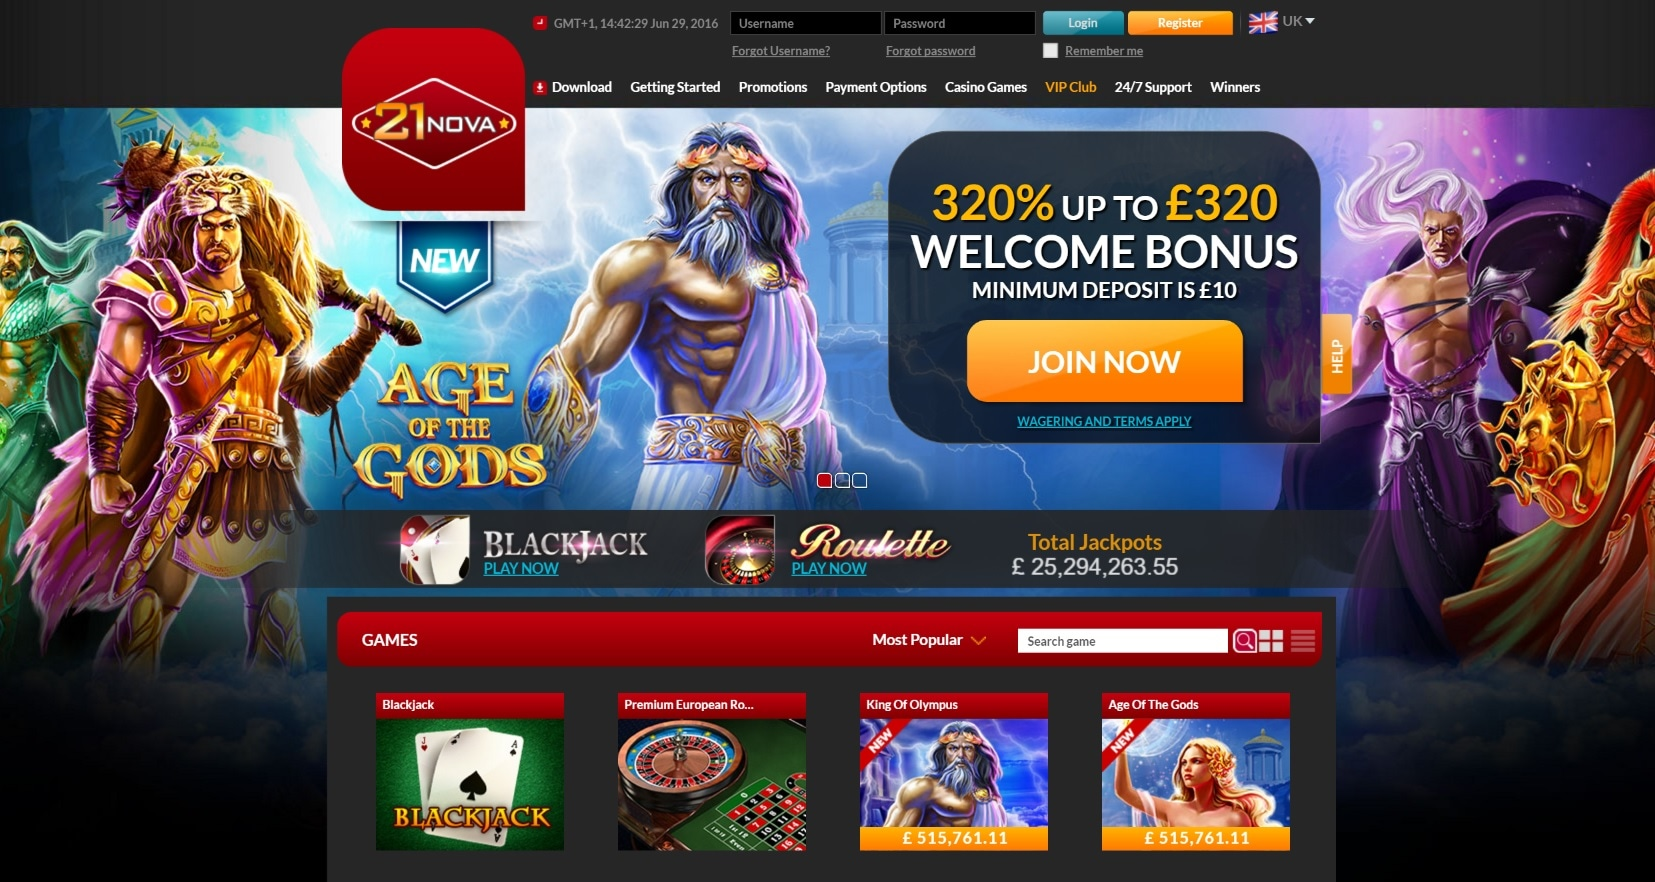 online casino gaming sites online casino.com